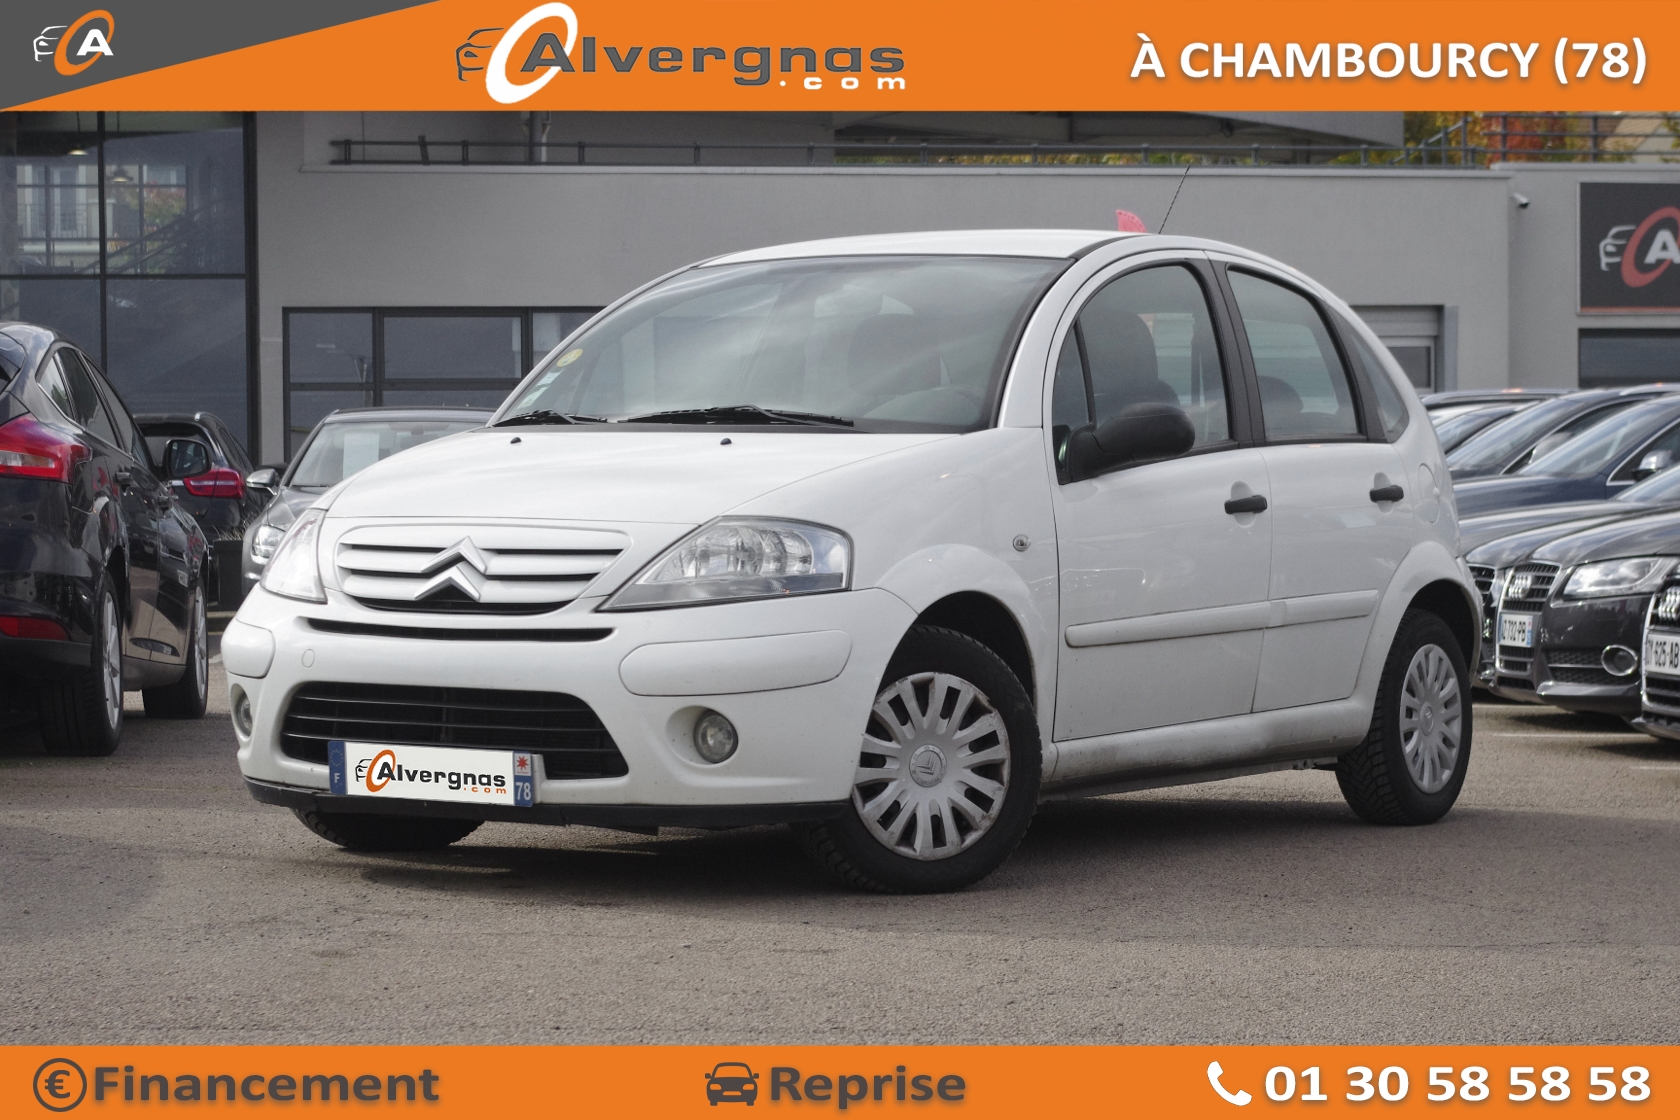 CITROEN C3 d'occasion sur Paris